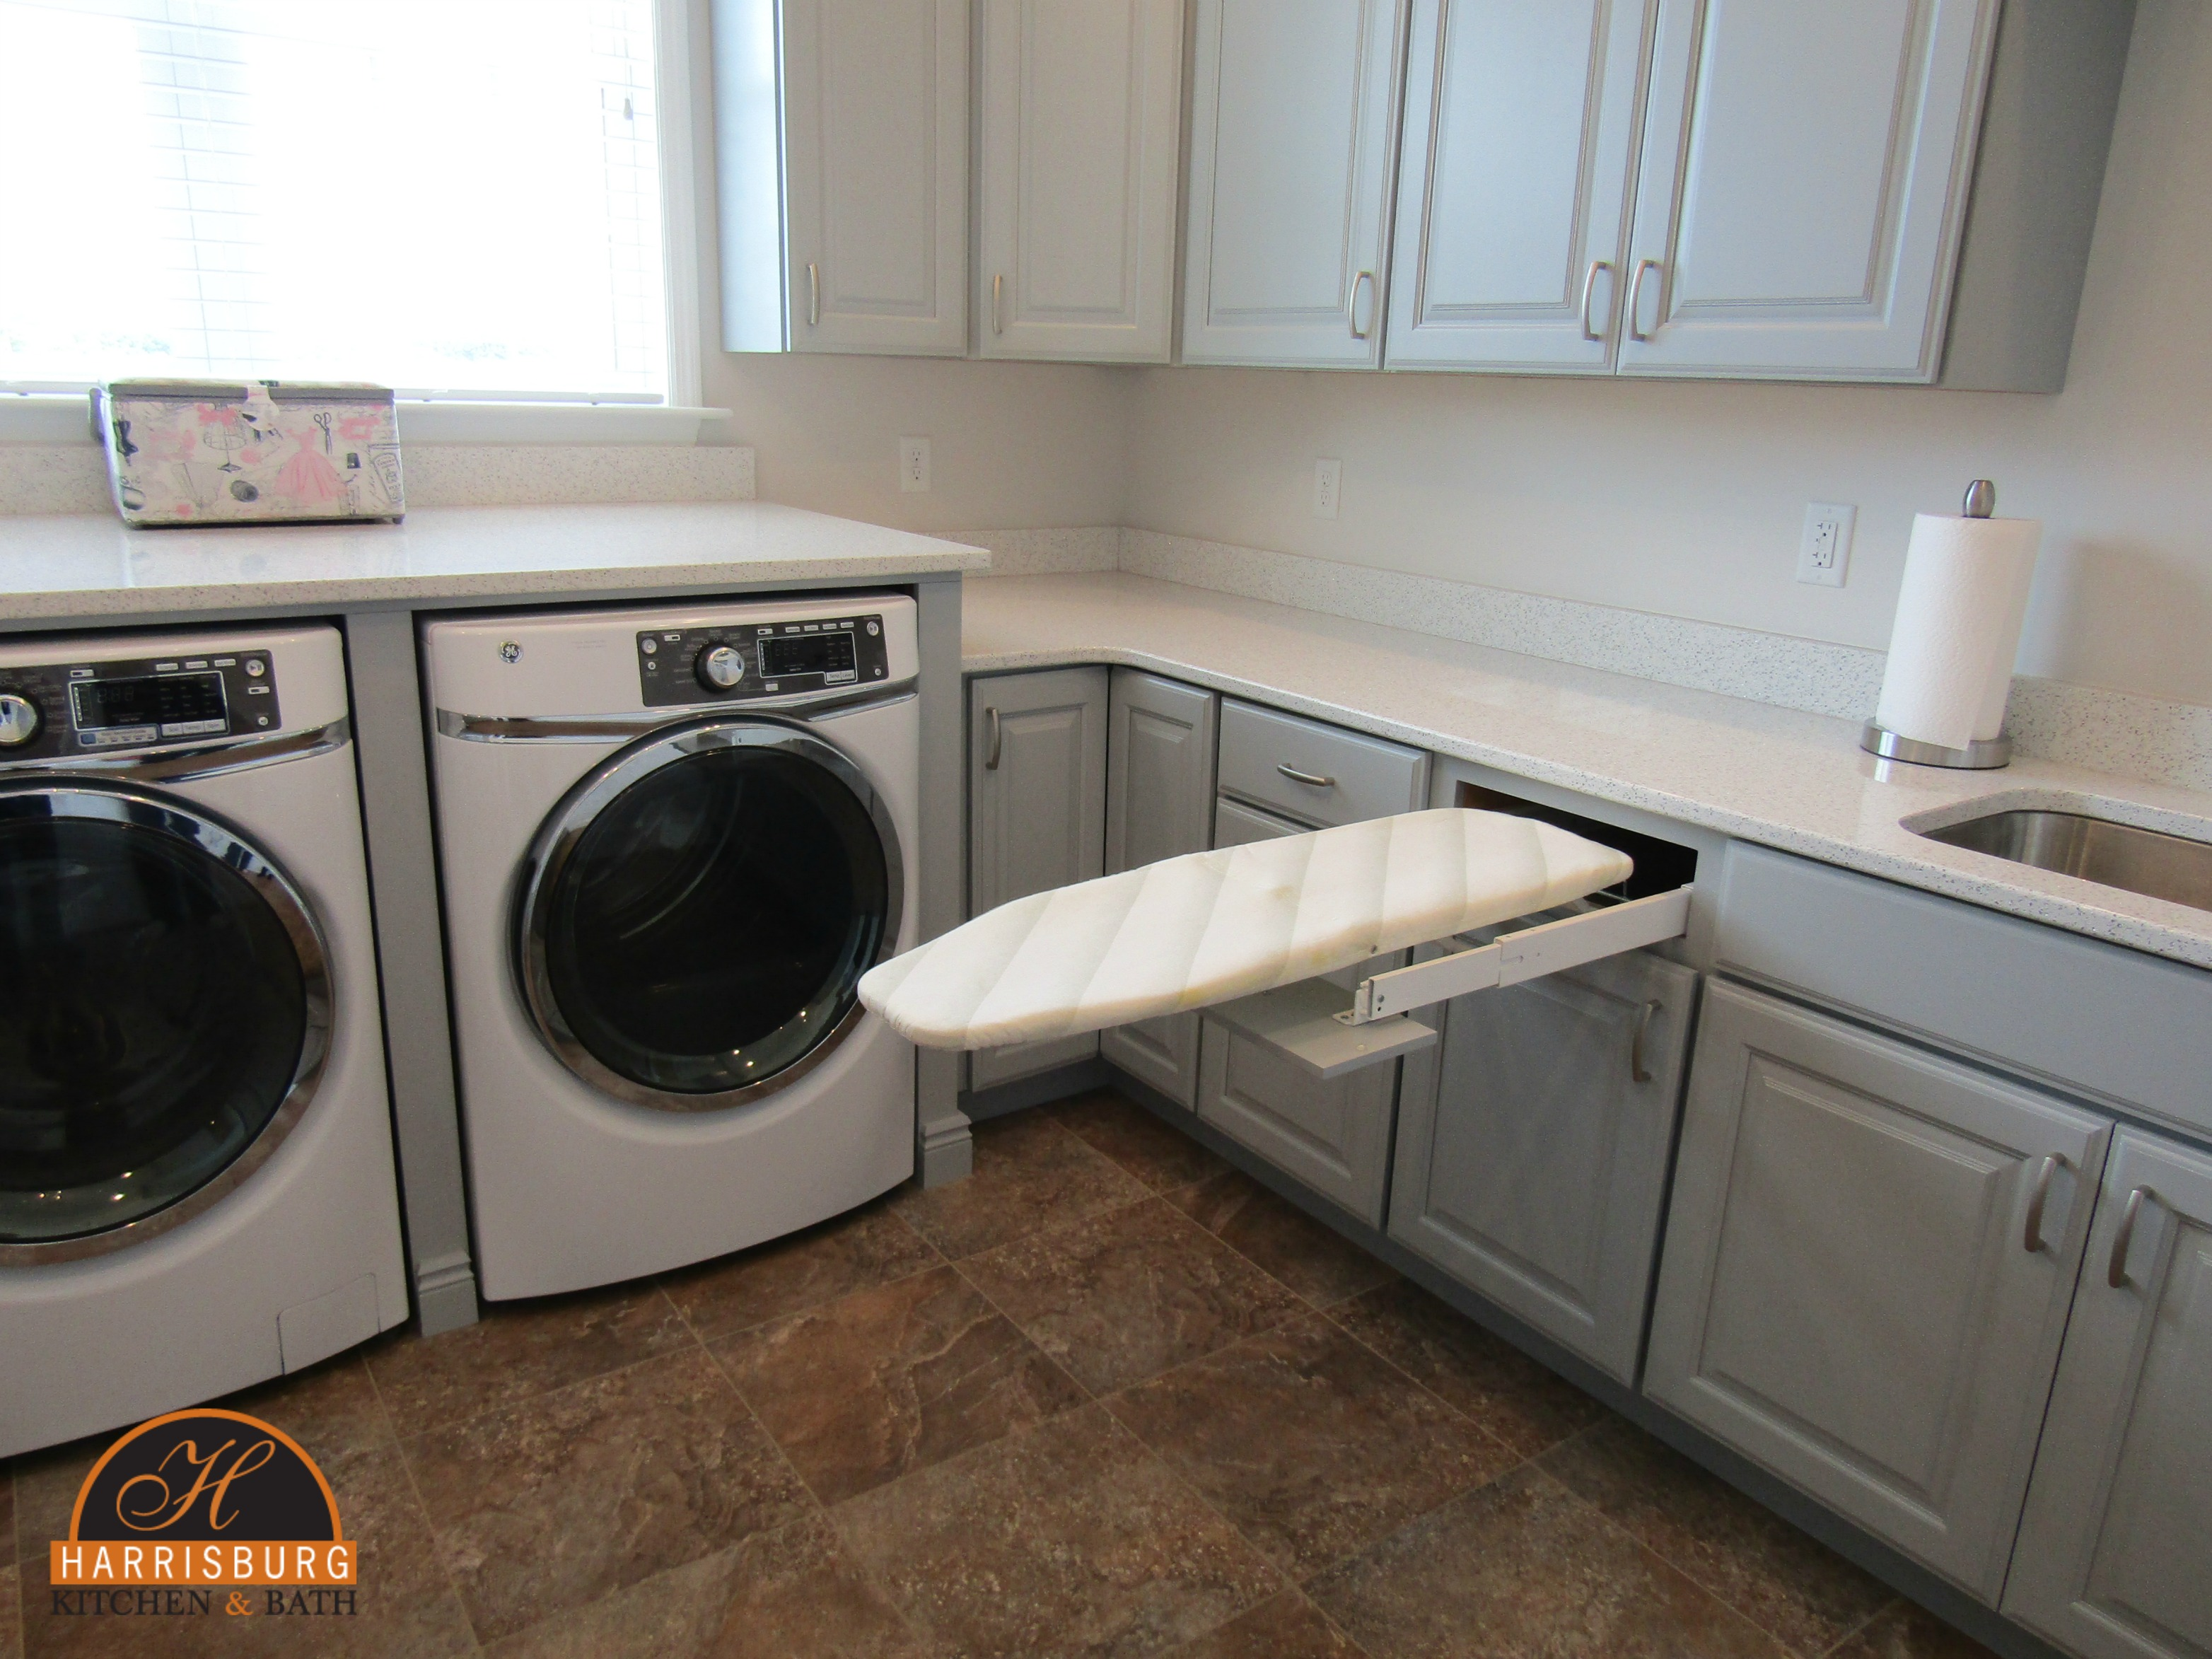 3 Ideas for Your Laundry Room that Will Make You Happy - Harrisburg on laundry in bathroom, laundry closet ideas, full basement ideas, pantry ideas, laundry wash and dry, laundry shed ideas, laundry organizer, laundry in cabinets, laundry and bathroom design ideas, laundry in home, laundry area ideas, great room ideas, laundry chute size, laundry office ideas, laundry basement ideas, laundry room, laundry in bedroom, laundry photography, laundry remodel, laundry steps,